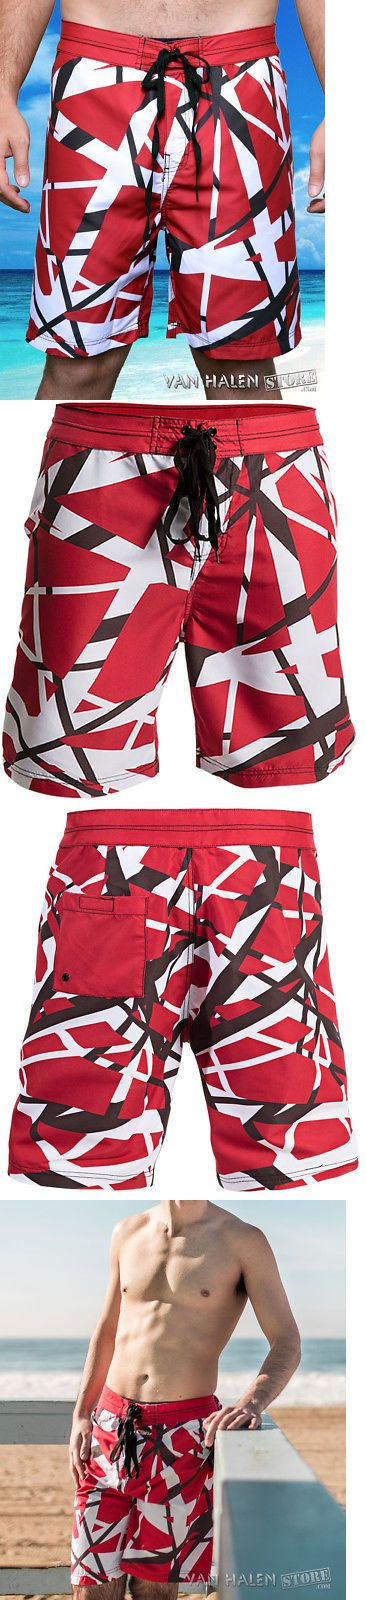 01df8bf694d Jeans Pants and Shorts 166696  Eddie Van Halen Board Shorts - Foo Fighters  Taylor Hawkins New Swimsuit Evh -  BUY IT NOW ONLY   39.95 on  eBay  jeans   pants ...